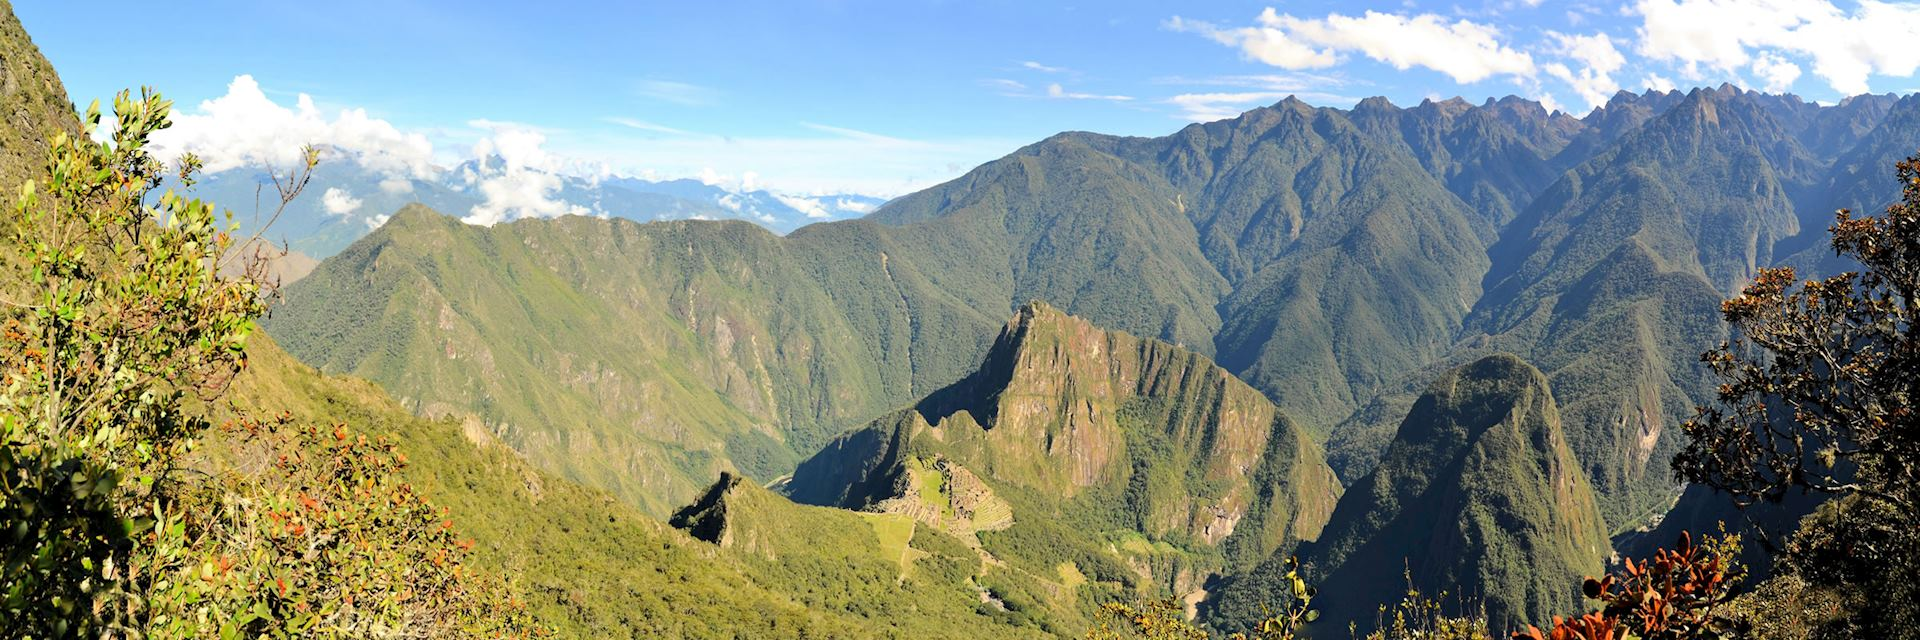 Aerial view of Machu Picchu